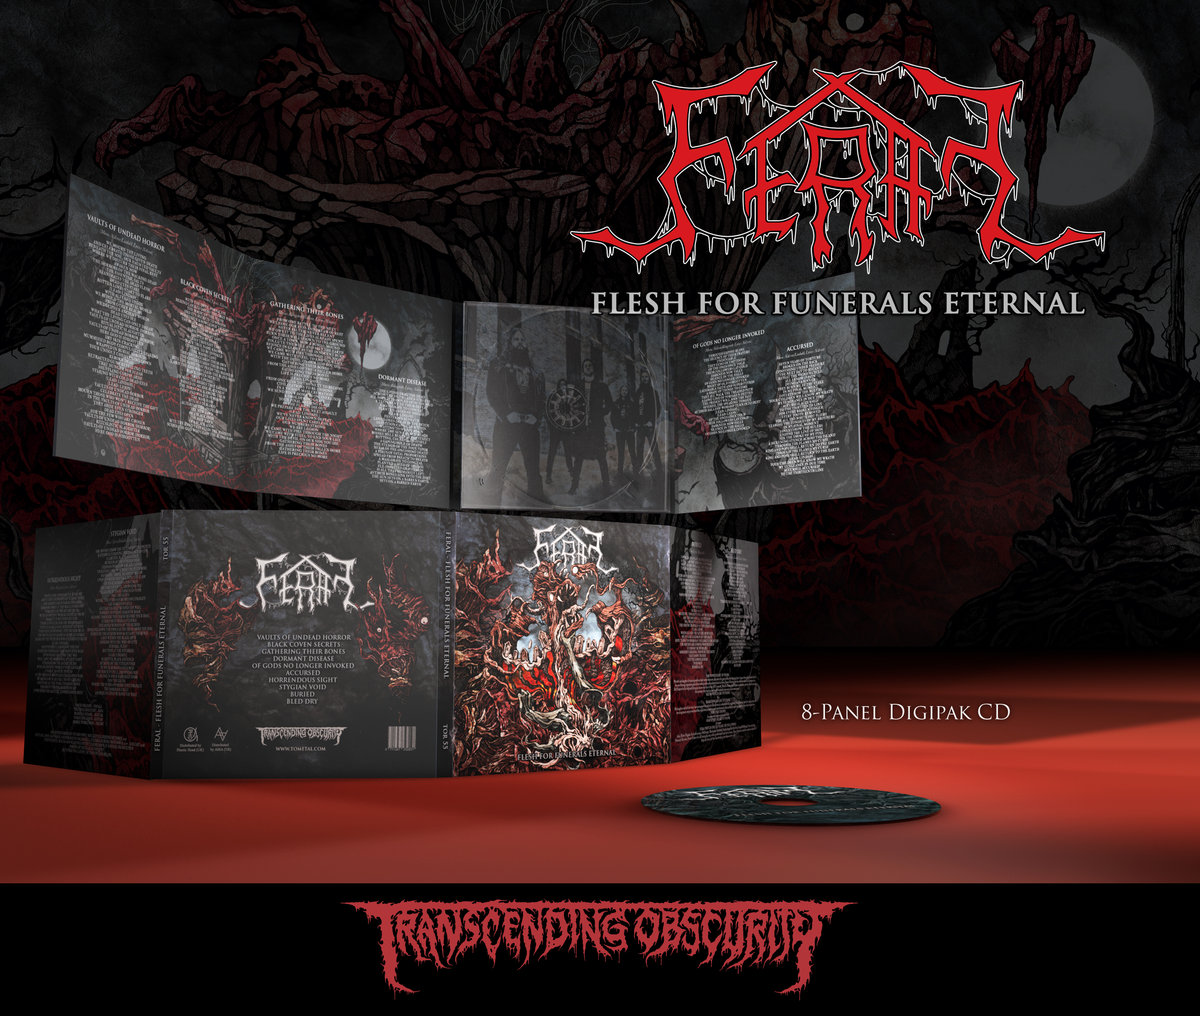 FERAL (Sweden) - 'Flesh For Funerals Eternal' 8-Panel Digipak CD with Matt Varnish